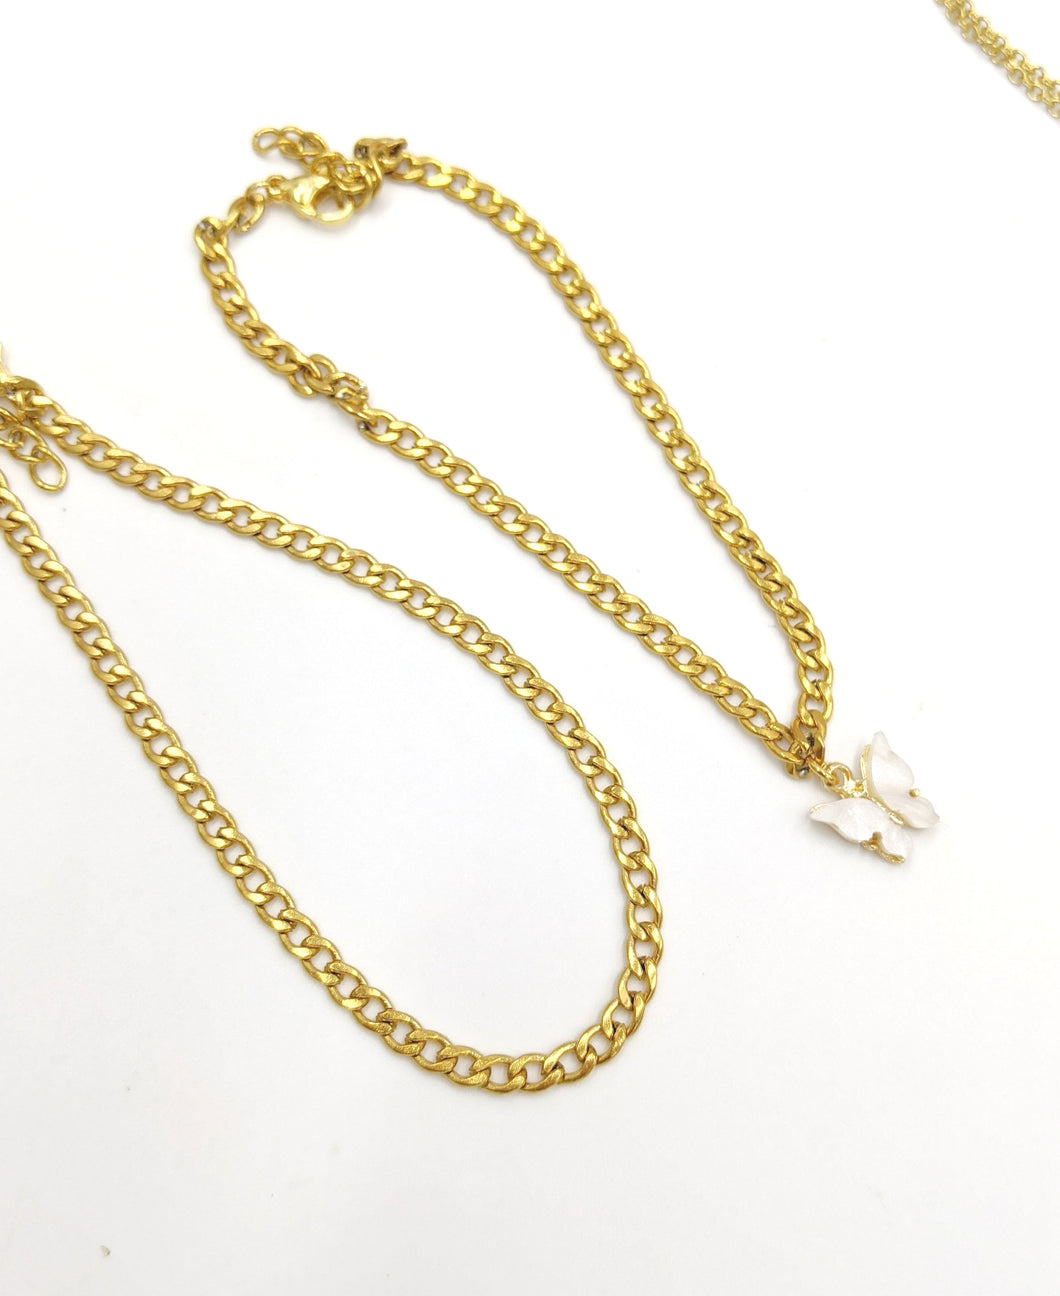 Dainty Stainless Steel Gold Cuban Link/White Butterfly Anklet